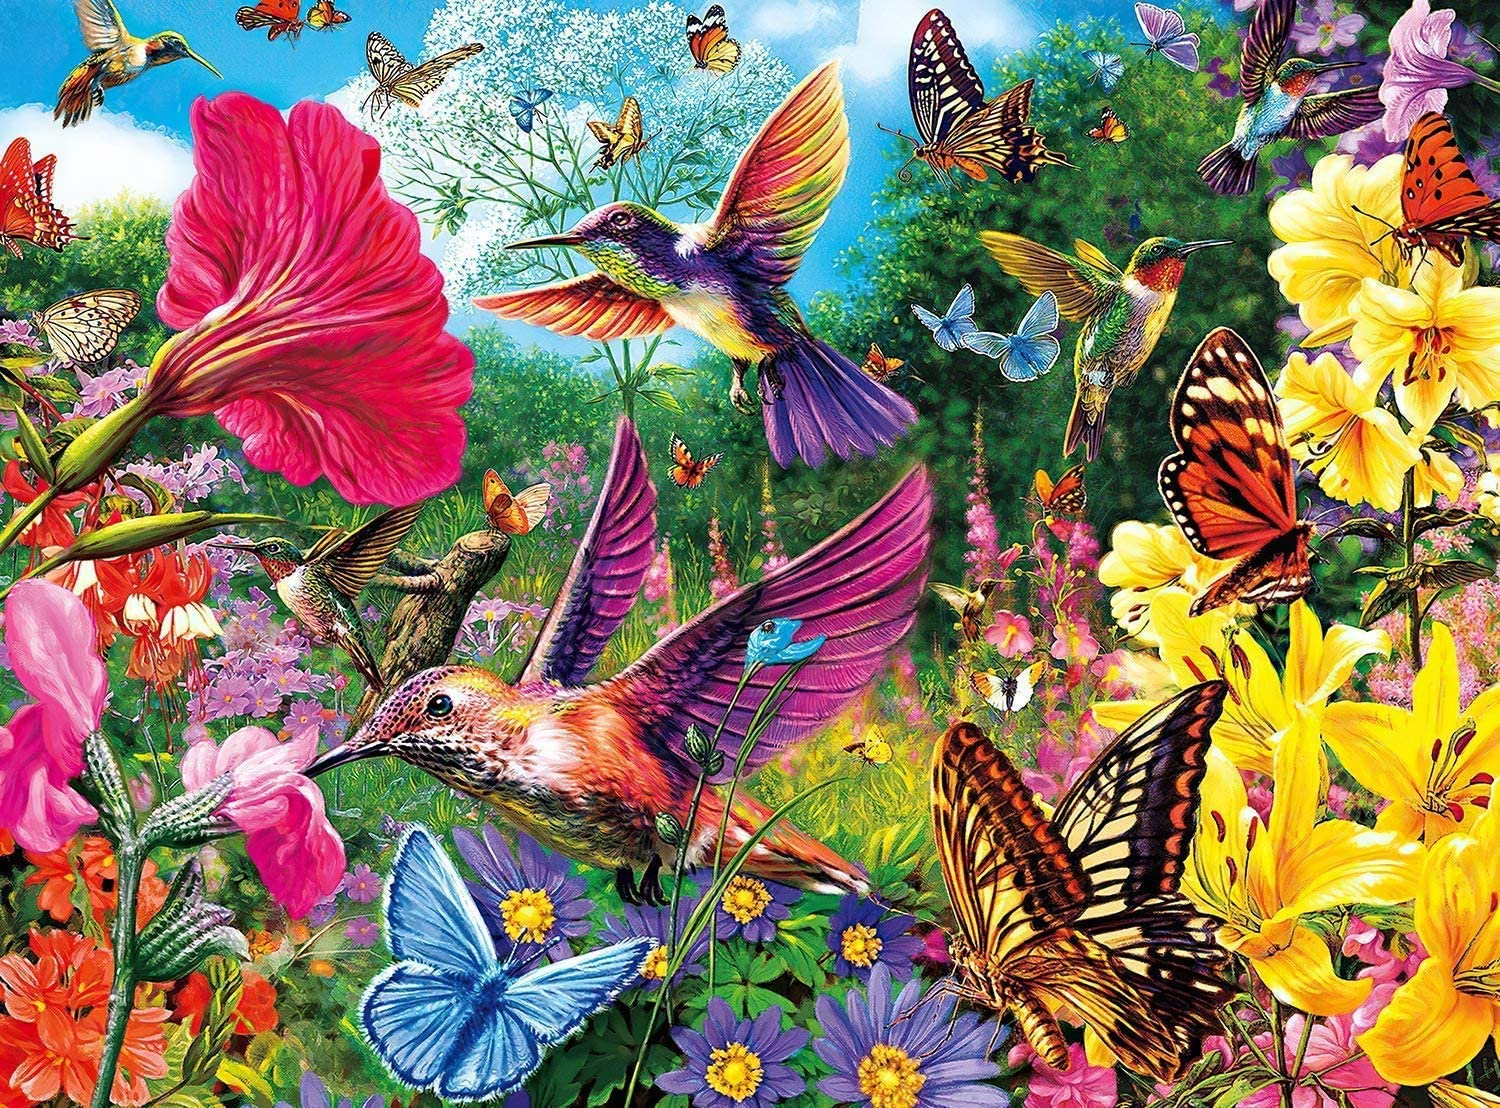 Large Wooden Jigsaw Puzzles 1000 Pieces,Cute Animal Bird Puzzle,Beautiful Hummingbird Garden Landscape Puzzle